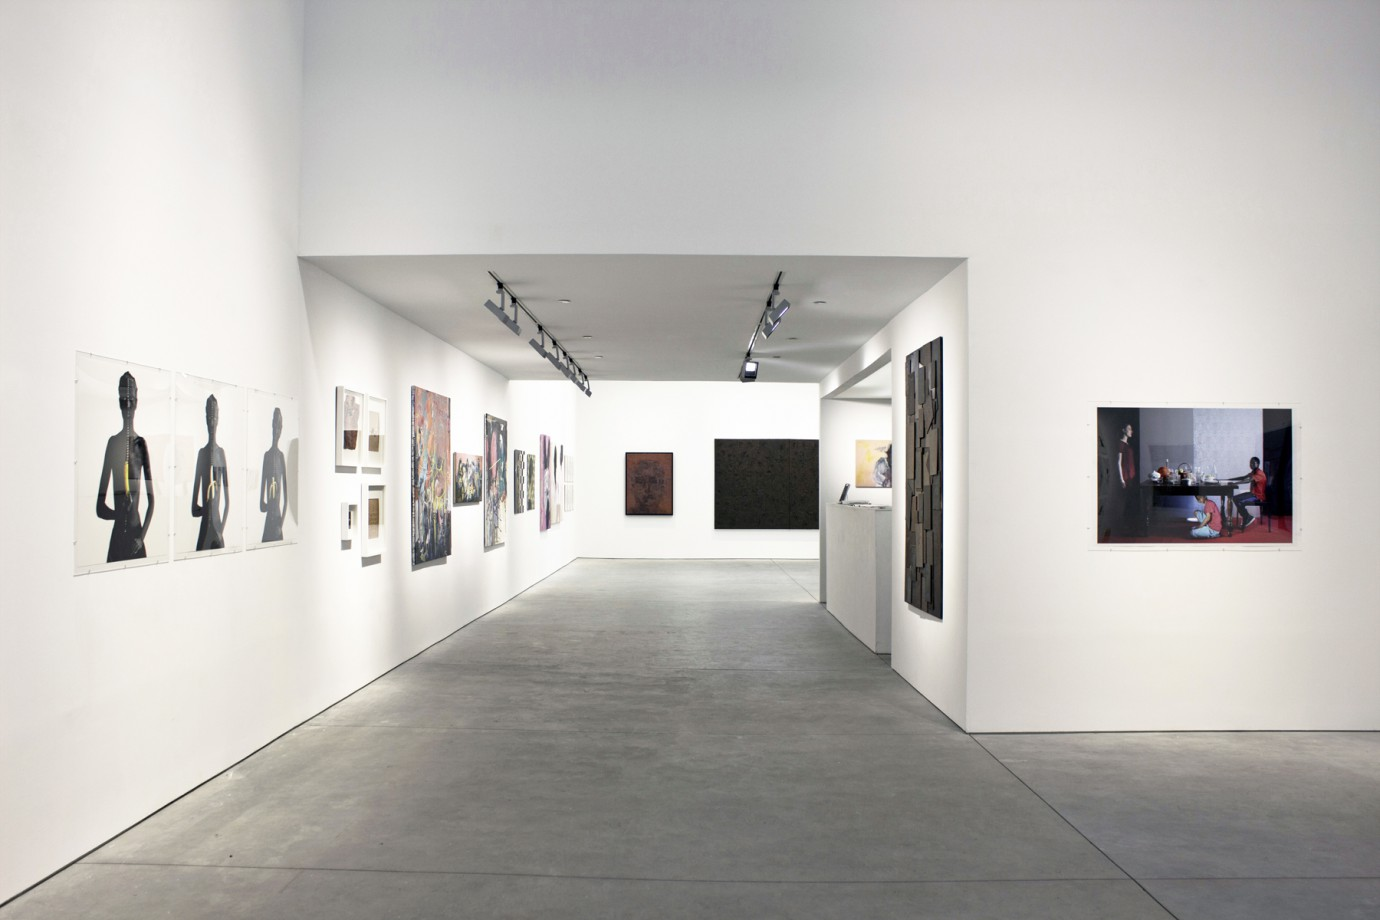 201507_Gallery-FR_GWCD_exhibit view_65